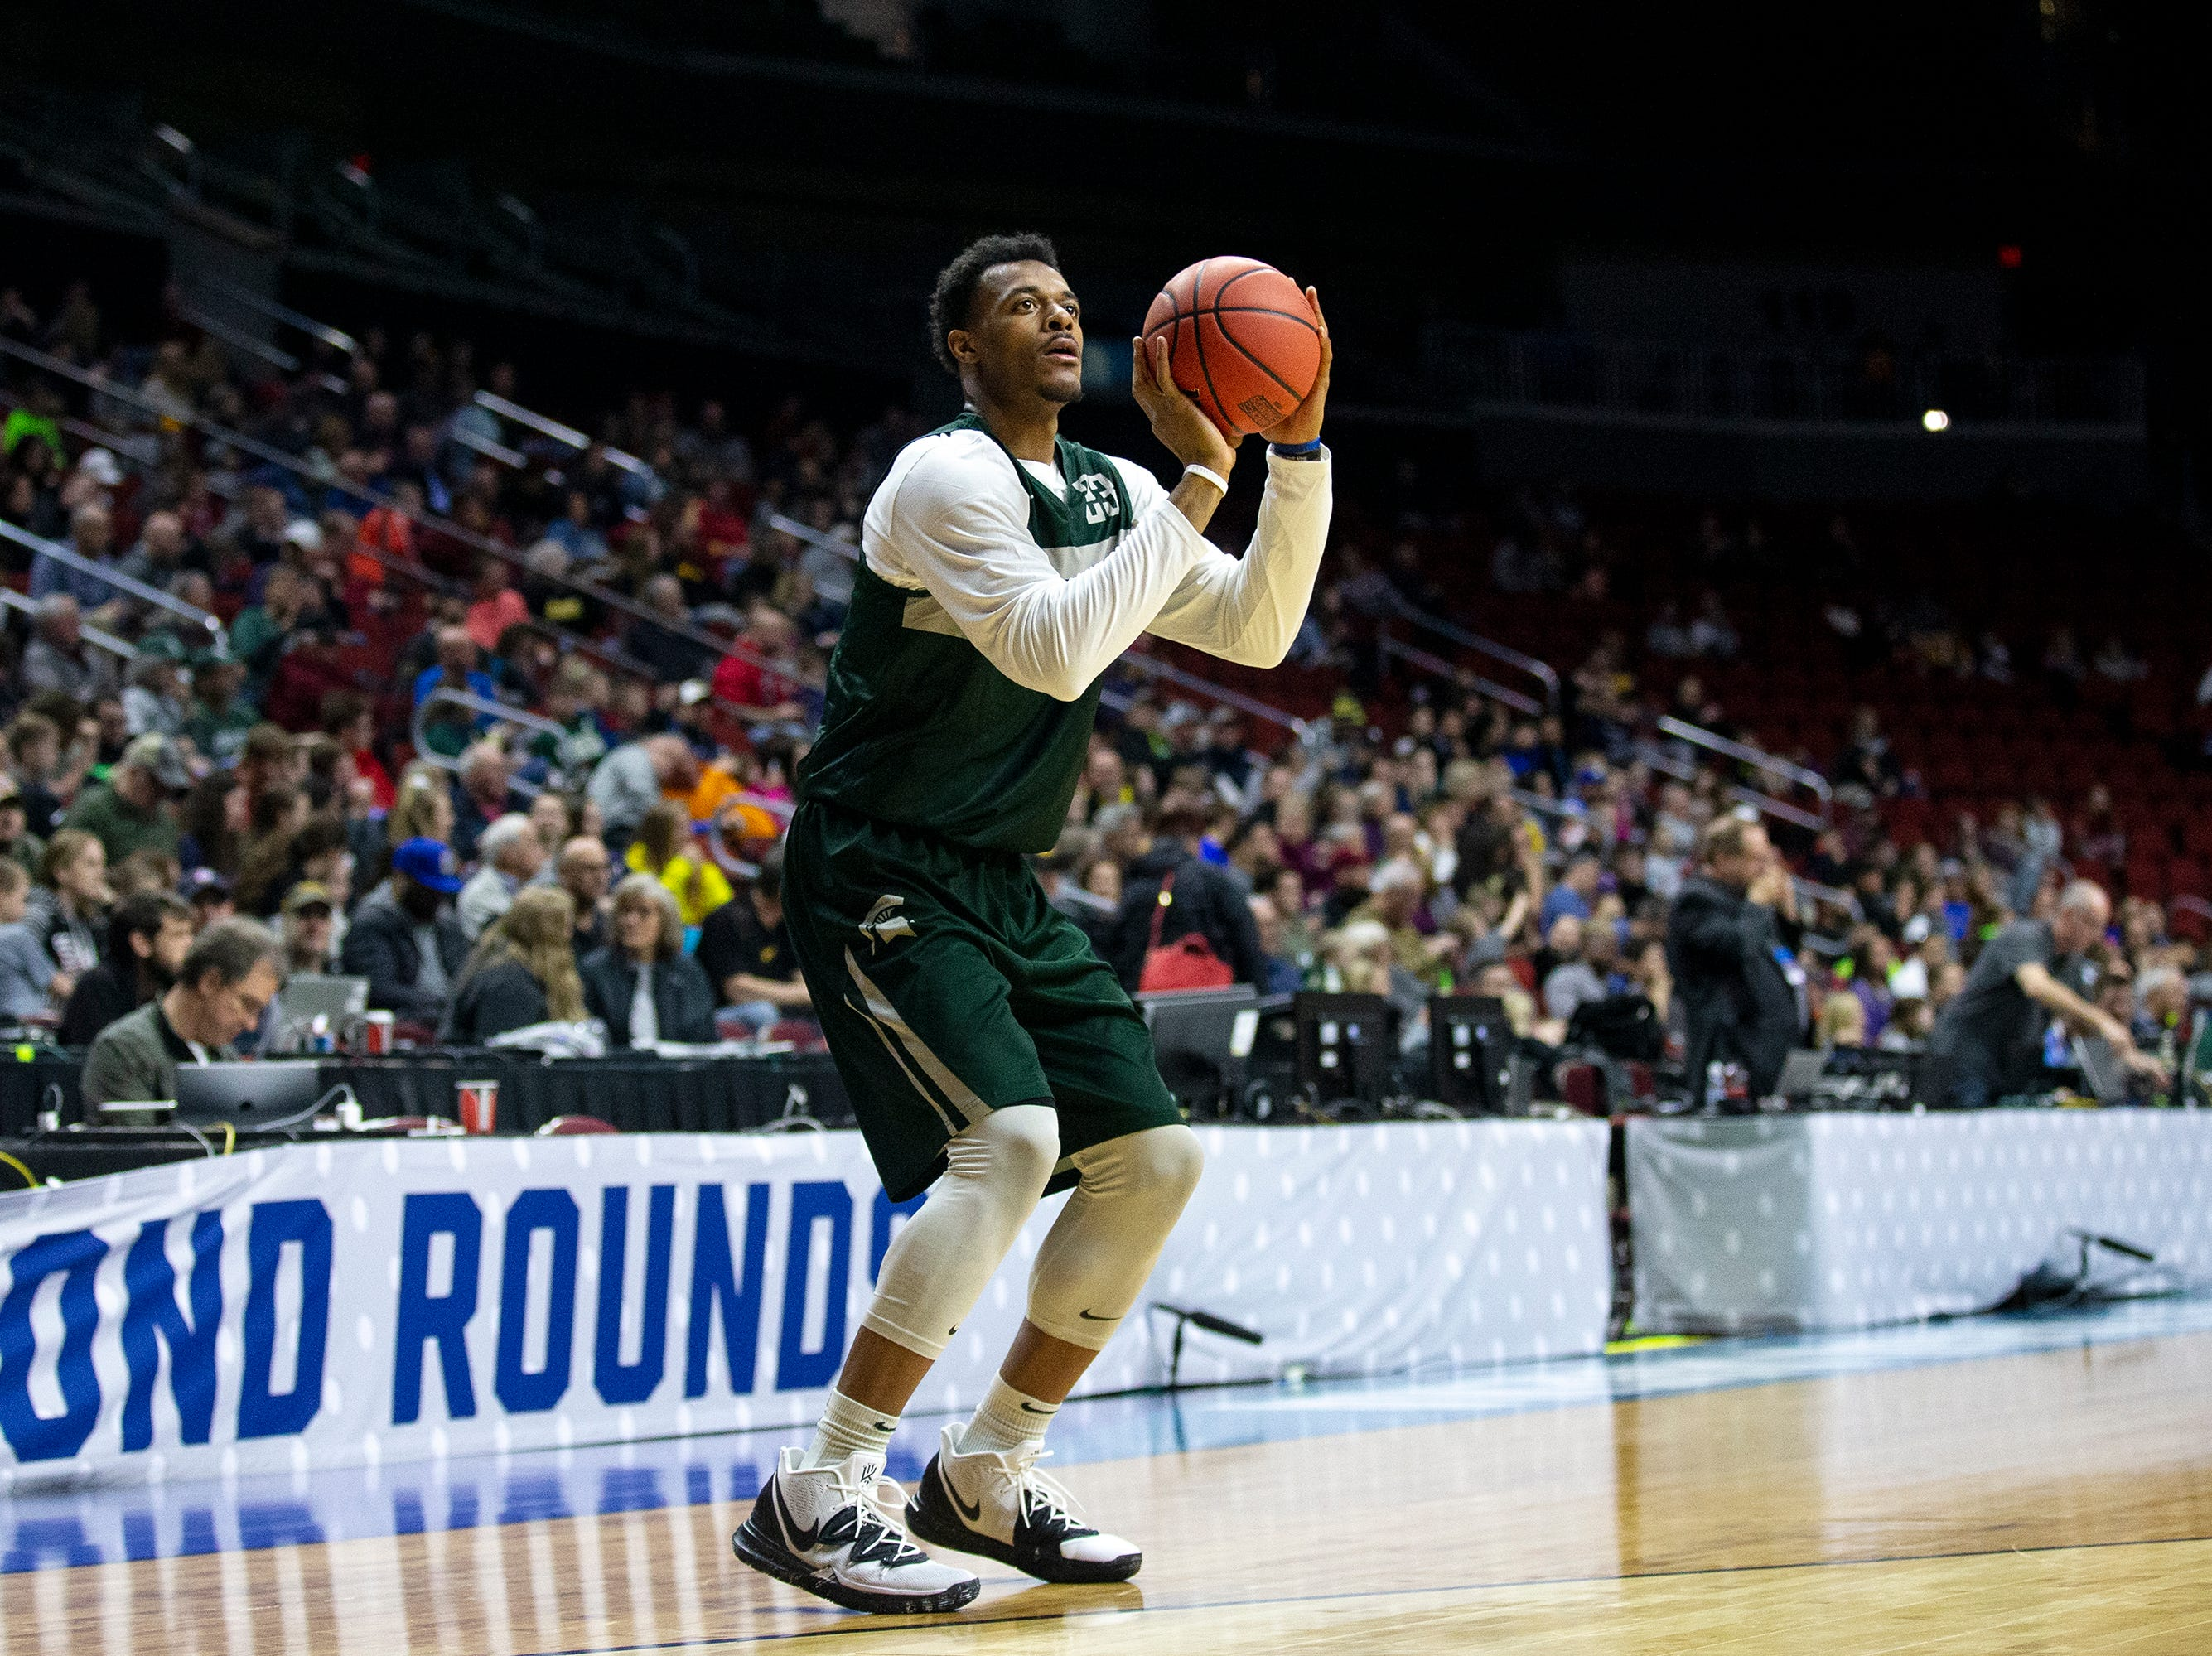 Michigan State's Xavier Tillman shoots the ball during Michigan State's open practice before the first round of the NCAA Men's Basketball Tournament on Wednesday, March 20, 2019, at Wells Fargo Arena in Des Moines, Iowa.